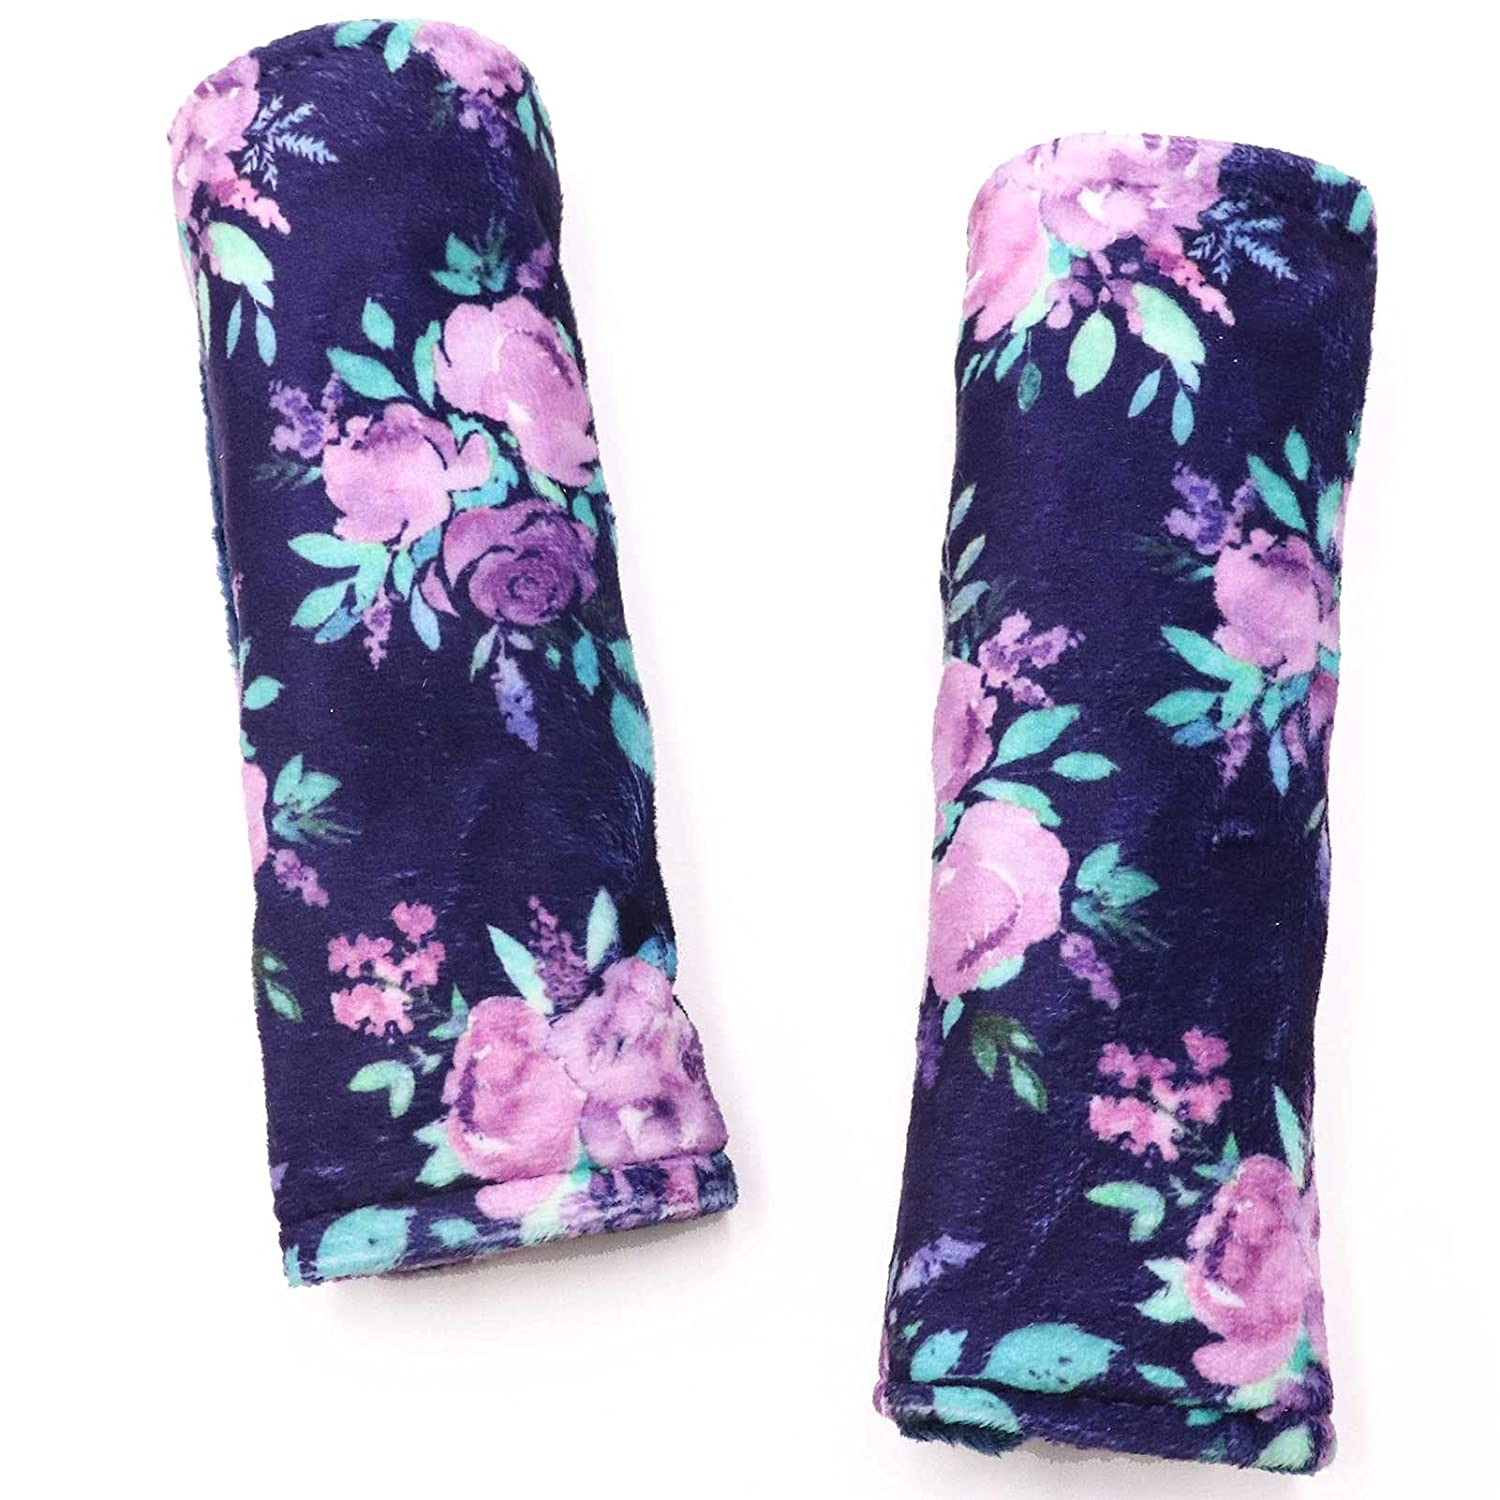 Baby Car Max 48% OFF Seat Belt Covers Max 40% OFF Strap Flower Purple f